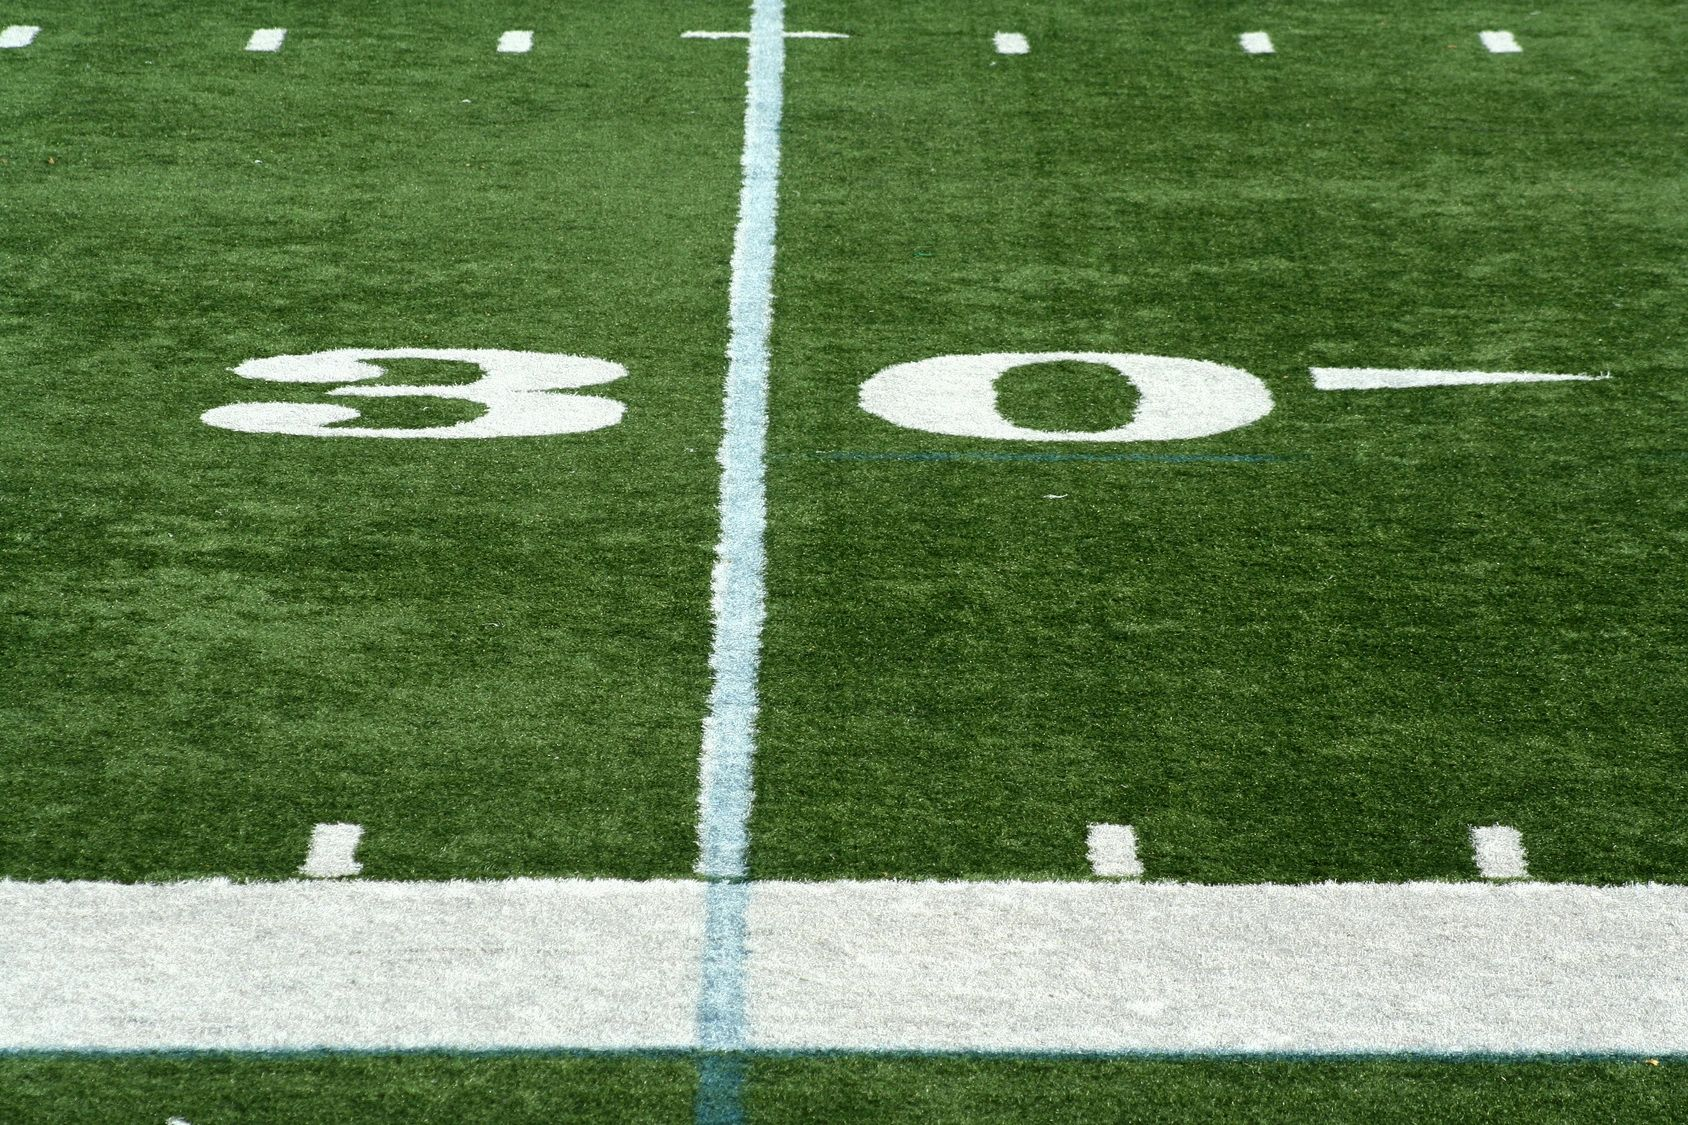 picture of the 30 yard line on a football field